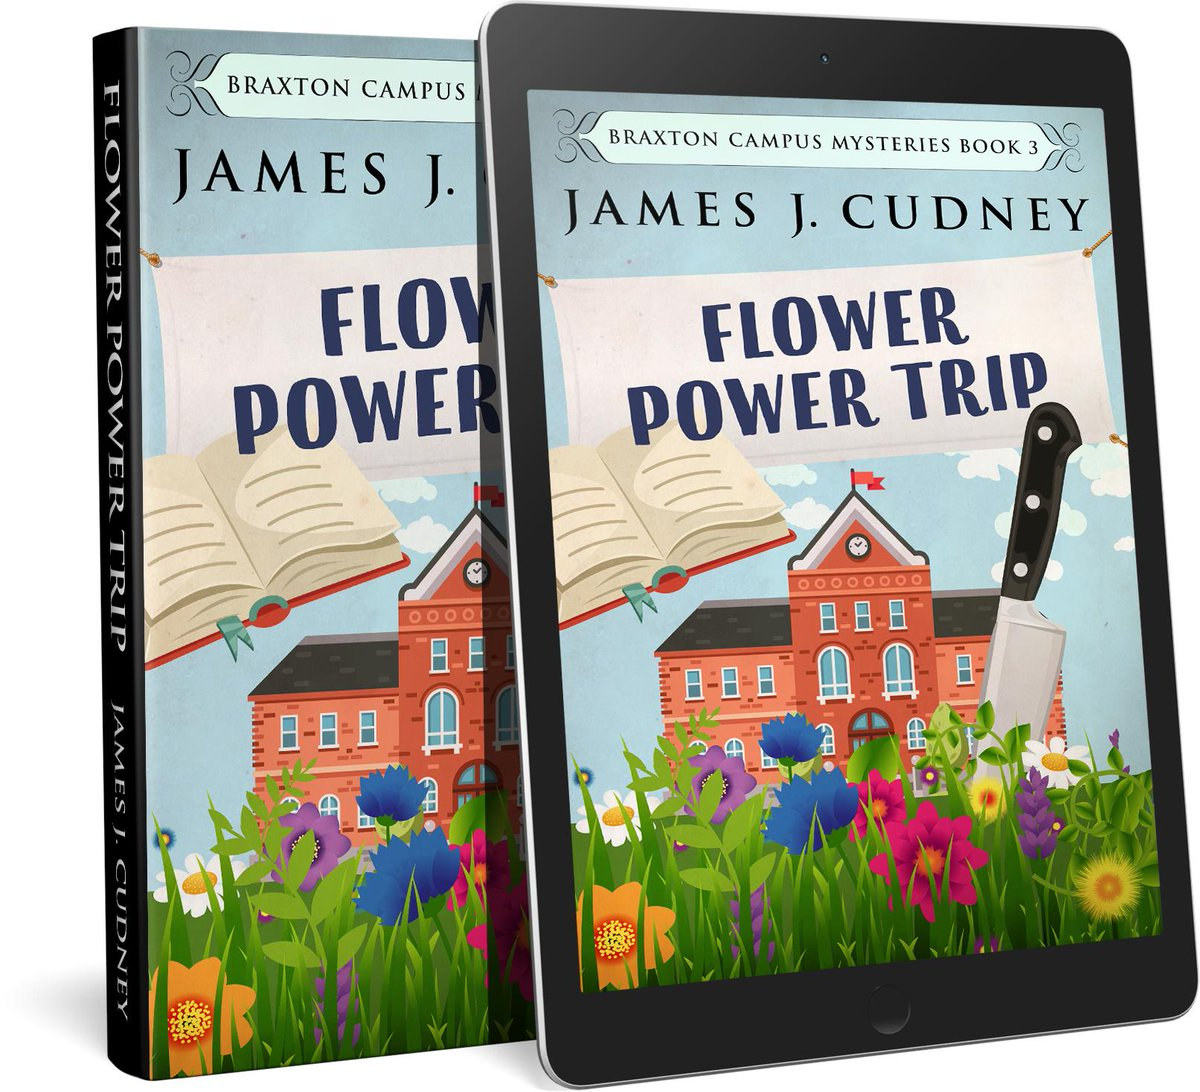 Coming soon from @jamescudney4 and Creativia: third book in the bestselling Braxton Campus Mysteries series. Pre-order now!   http:// mybook.to/FlowerPowerTrip  &nbsp;    #kindle #mystery #cozymystery #collegelife #flowerpower #powertrip #murder #mafia #explosion #knife #amreading<br>http://pic.twitter.com/VgsXPS0ywN